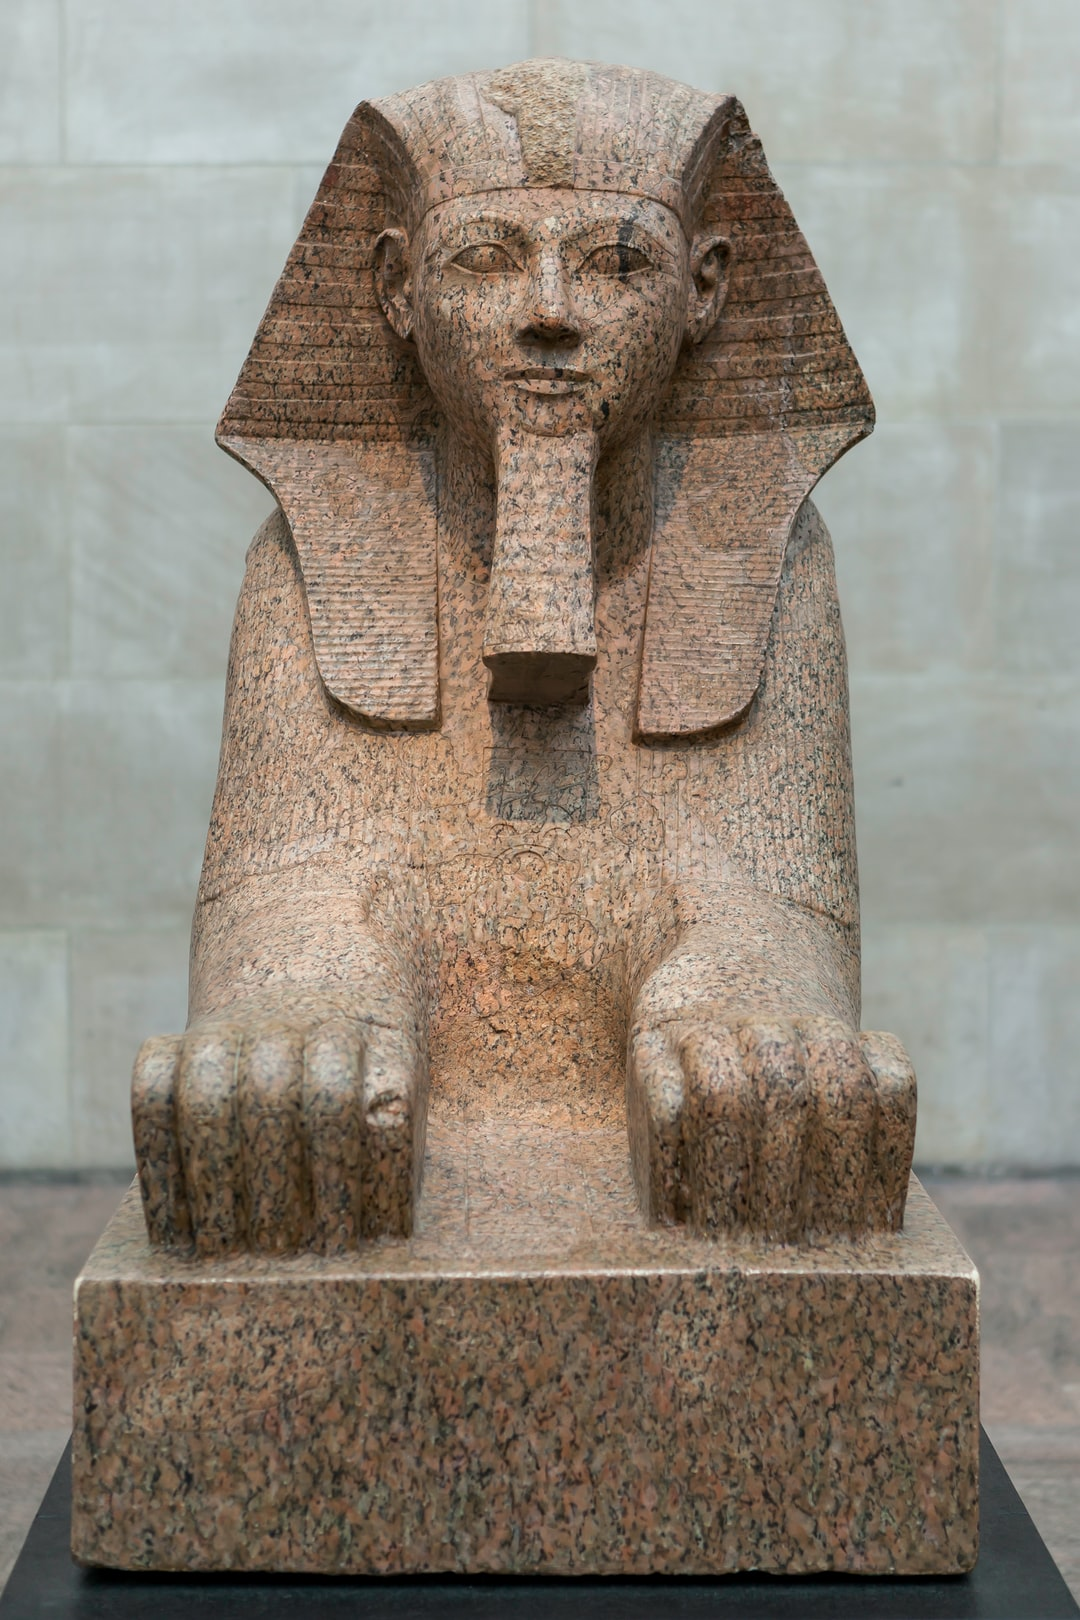 Sphinx of Hatshepsut (ca. 1479–1458 B.C.)  This colossal sphinx portrays the female pharaoh Hatshepsut with the body of a lion and a human head wearing a nemes–headcloth and false beard. The sculptor has carefully observed the powerful muscles of the lion as contrasted to the handsome, idealized face of the pharaoh. It was one of at least six granite sphinxes that stood in Hatshepsut's mortuary temple at Deir el-Bahri.